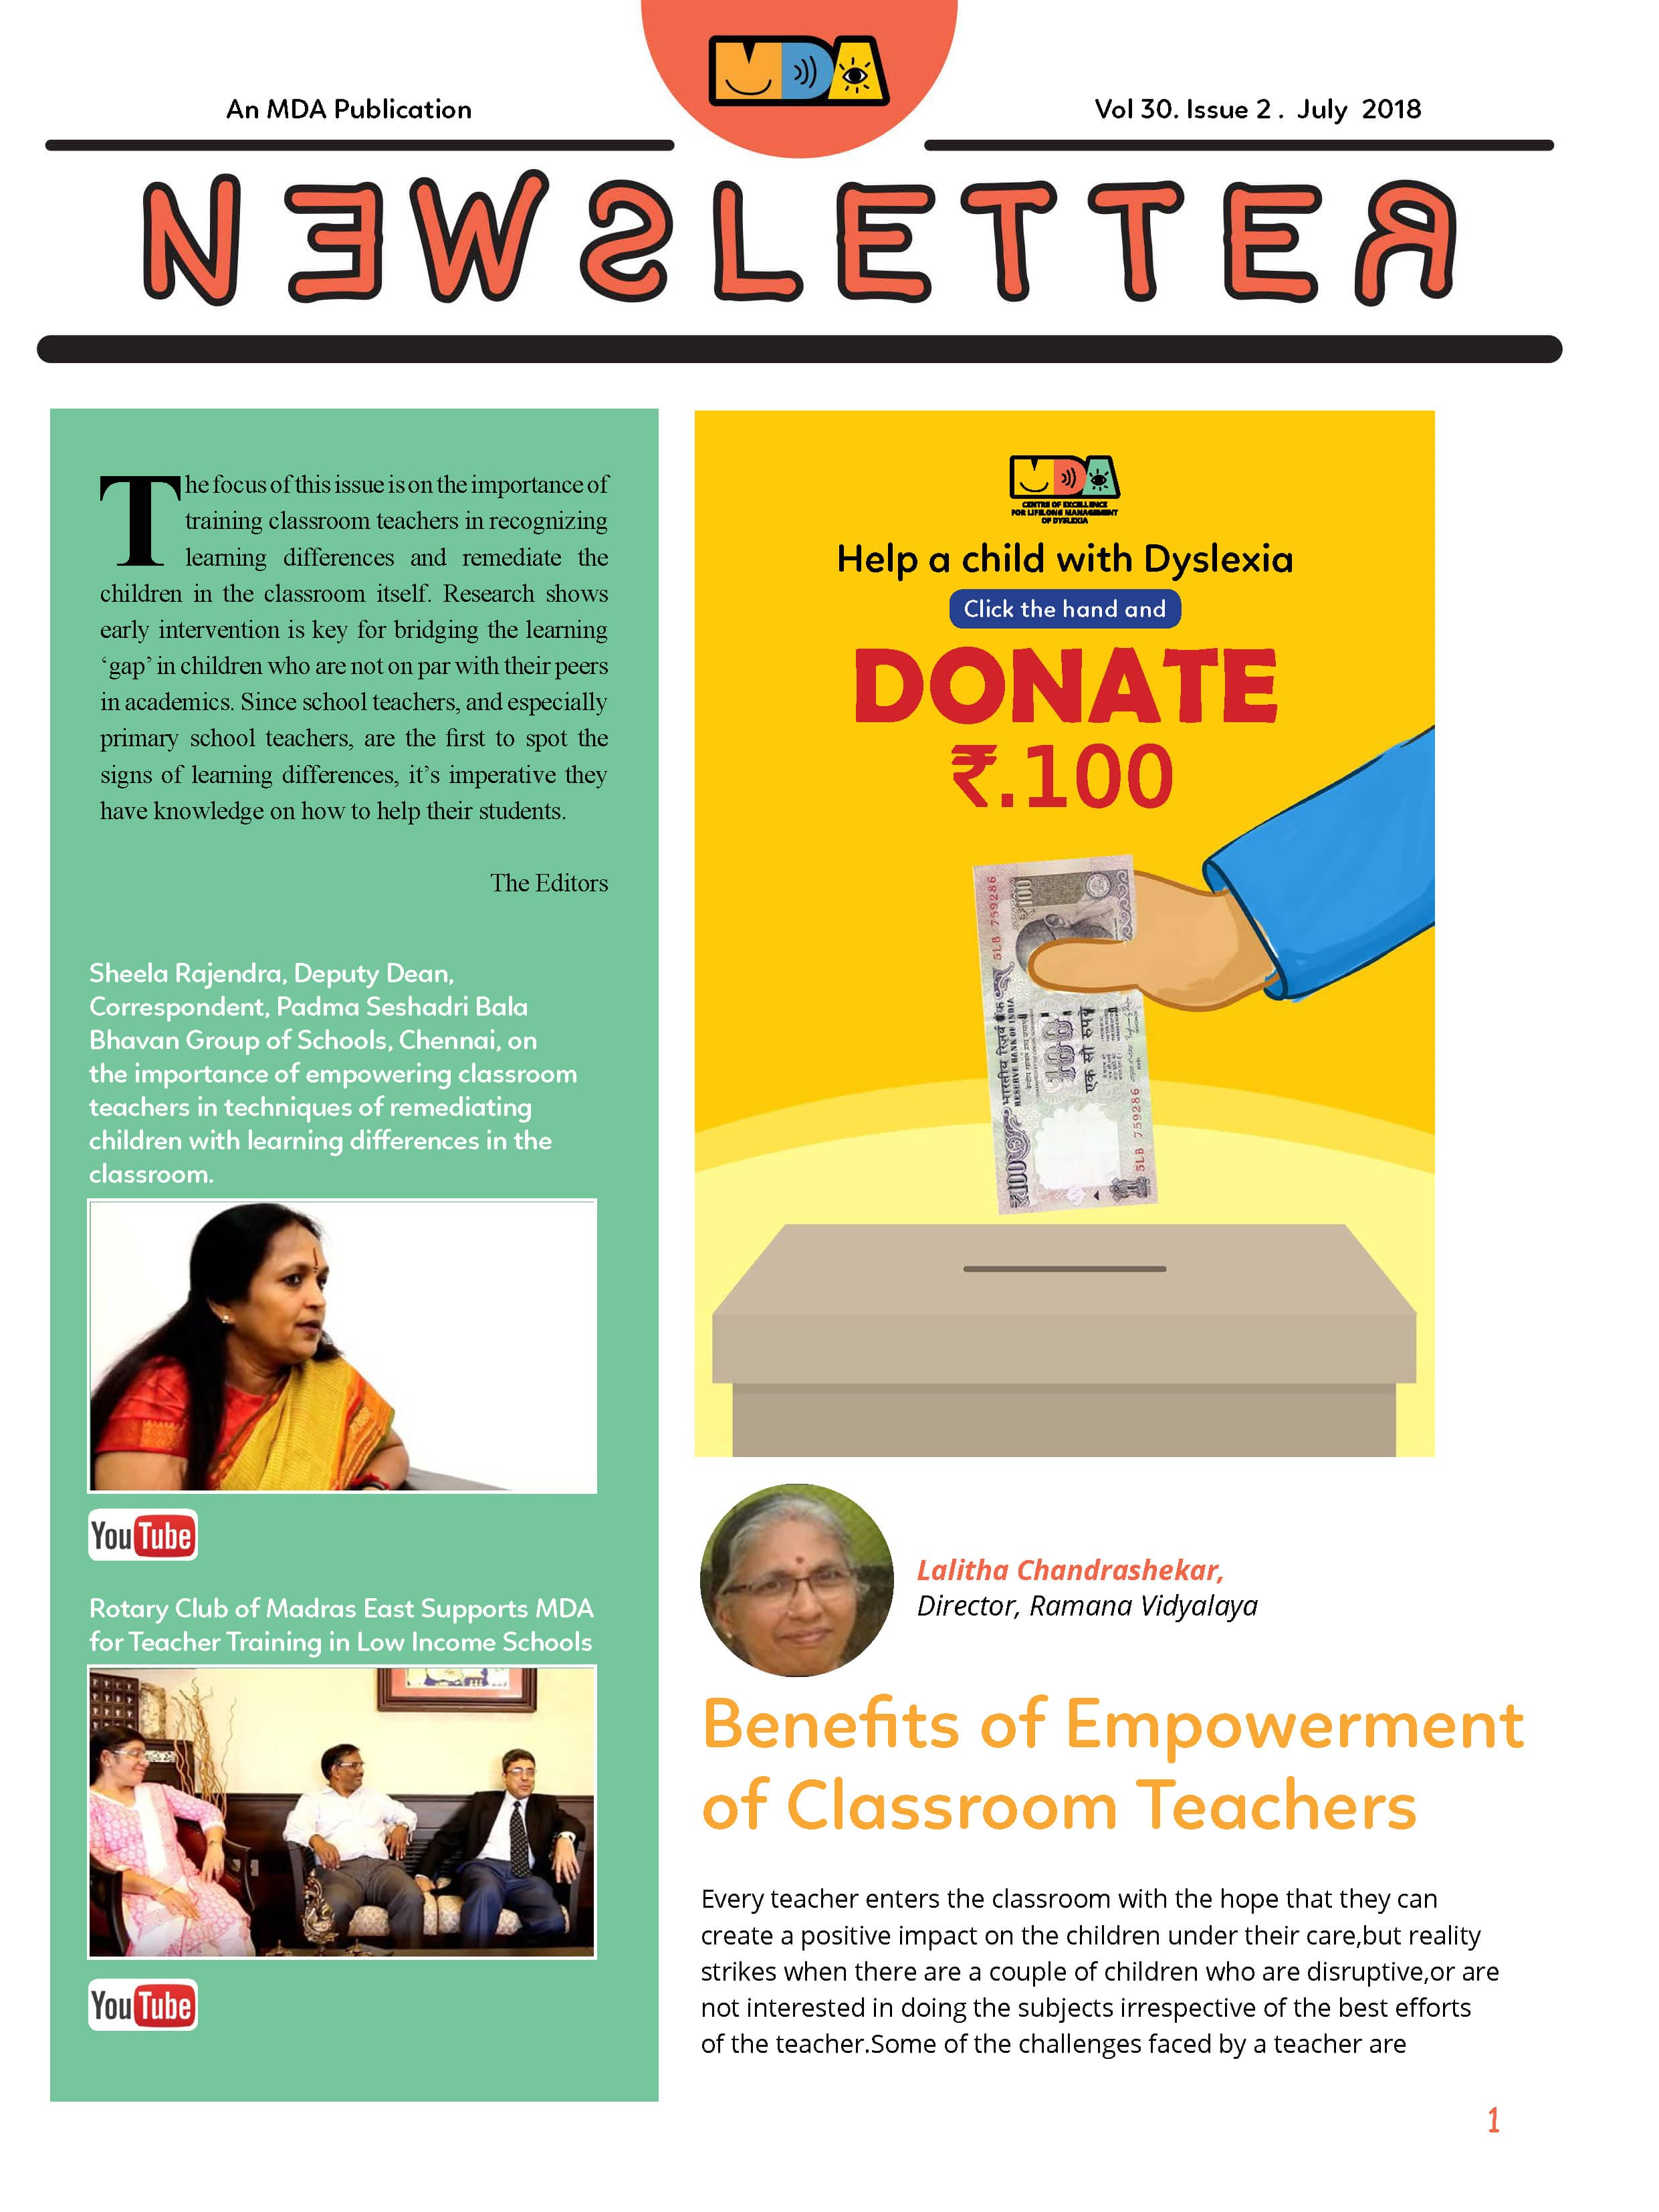 MDA News Letter July 2018 CoverPage min